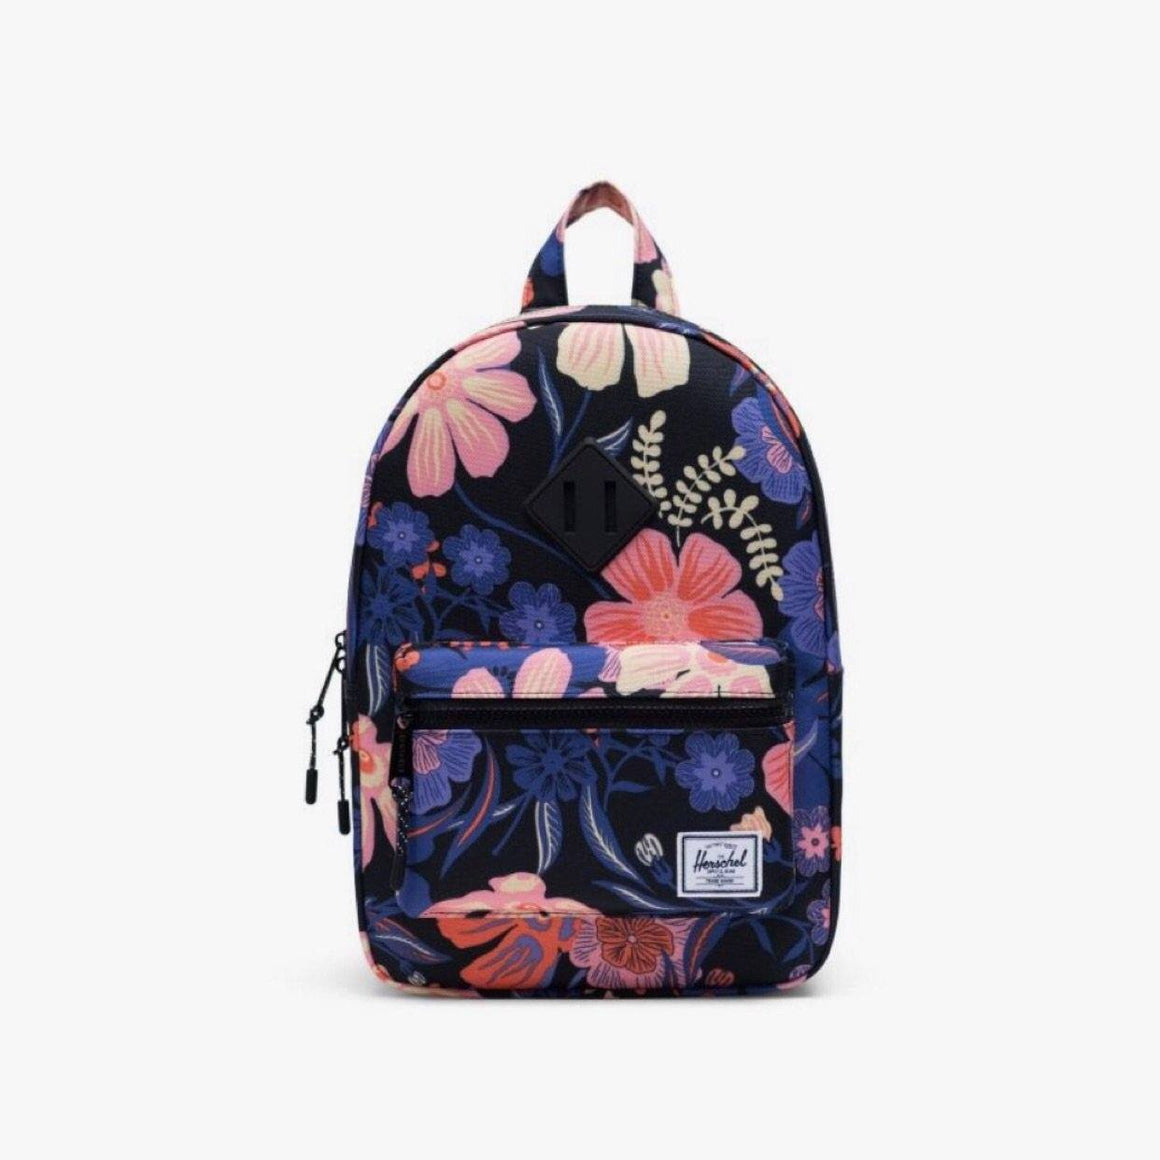 10313-03264-OS-Herschel Kids Heritage 9L Backpack - Night Floral Black Backpack Herschel